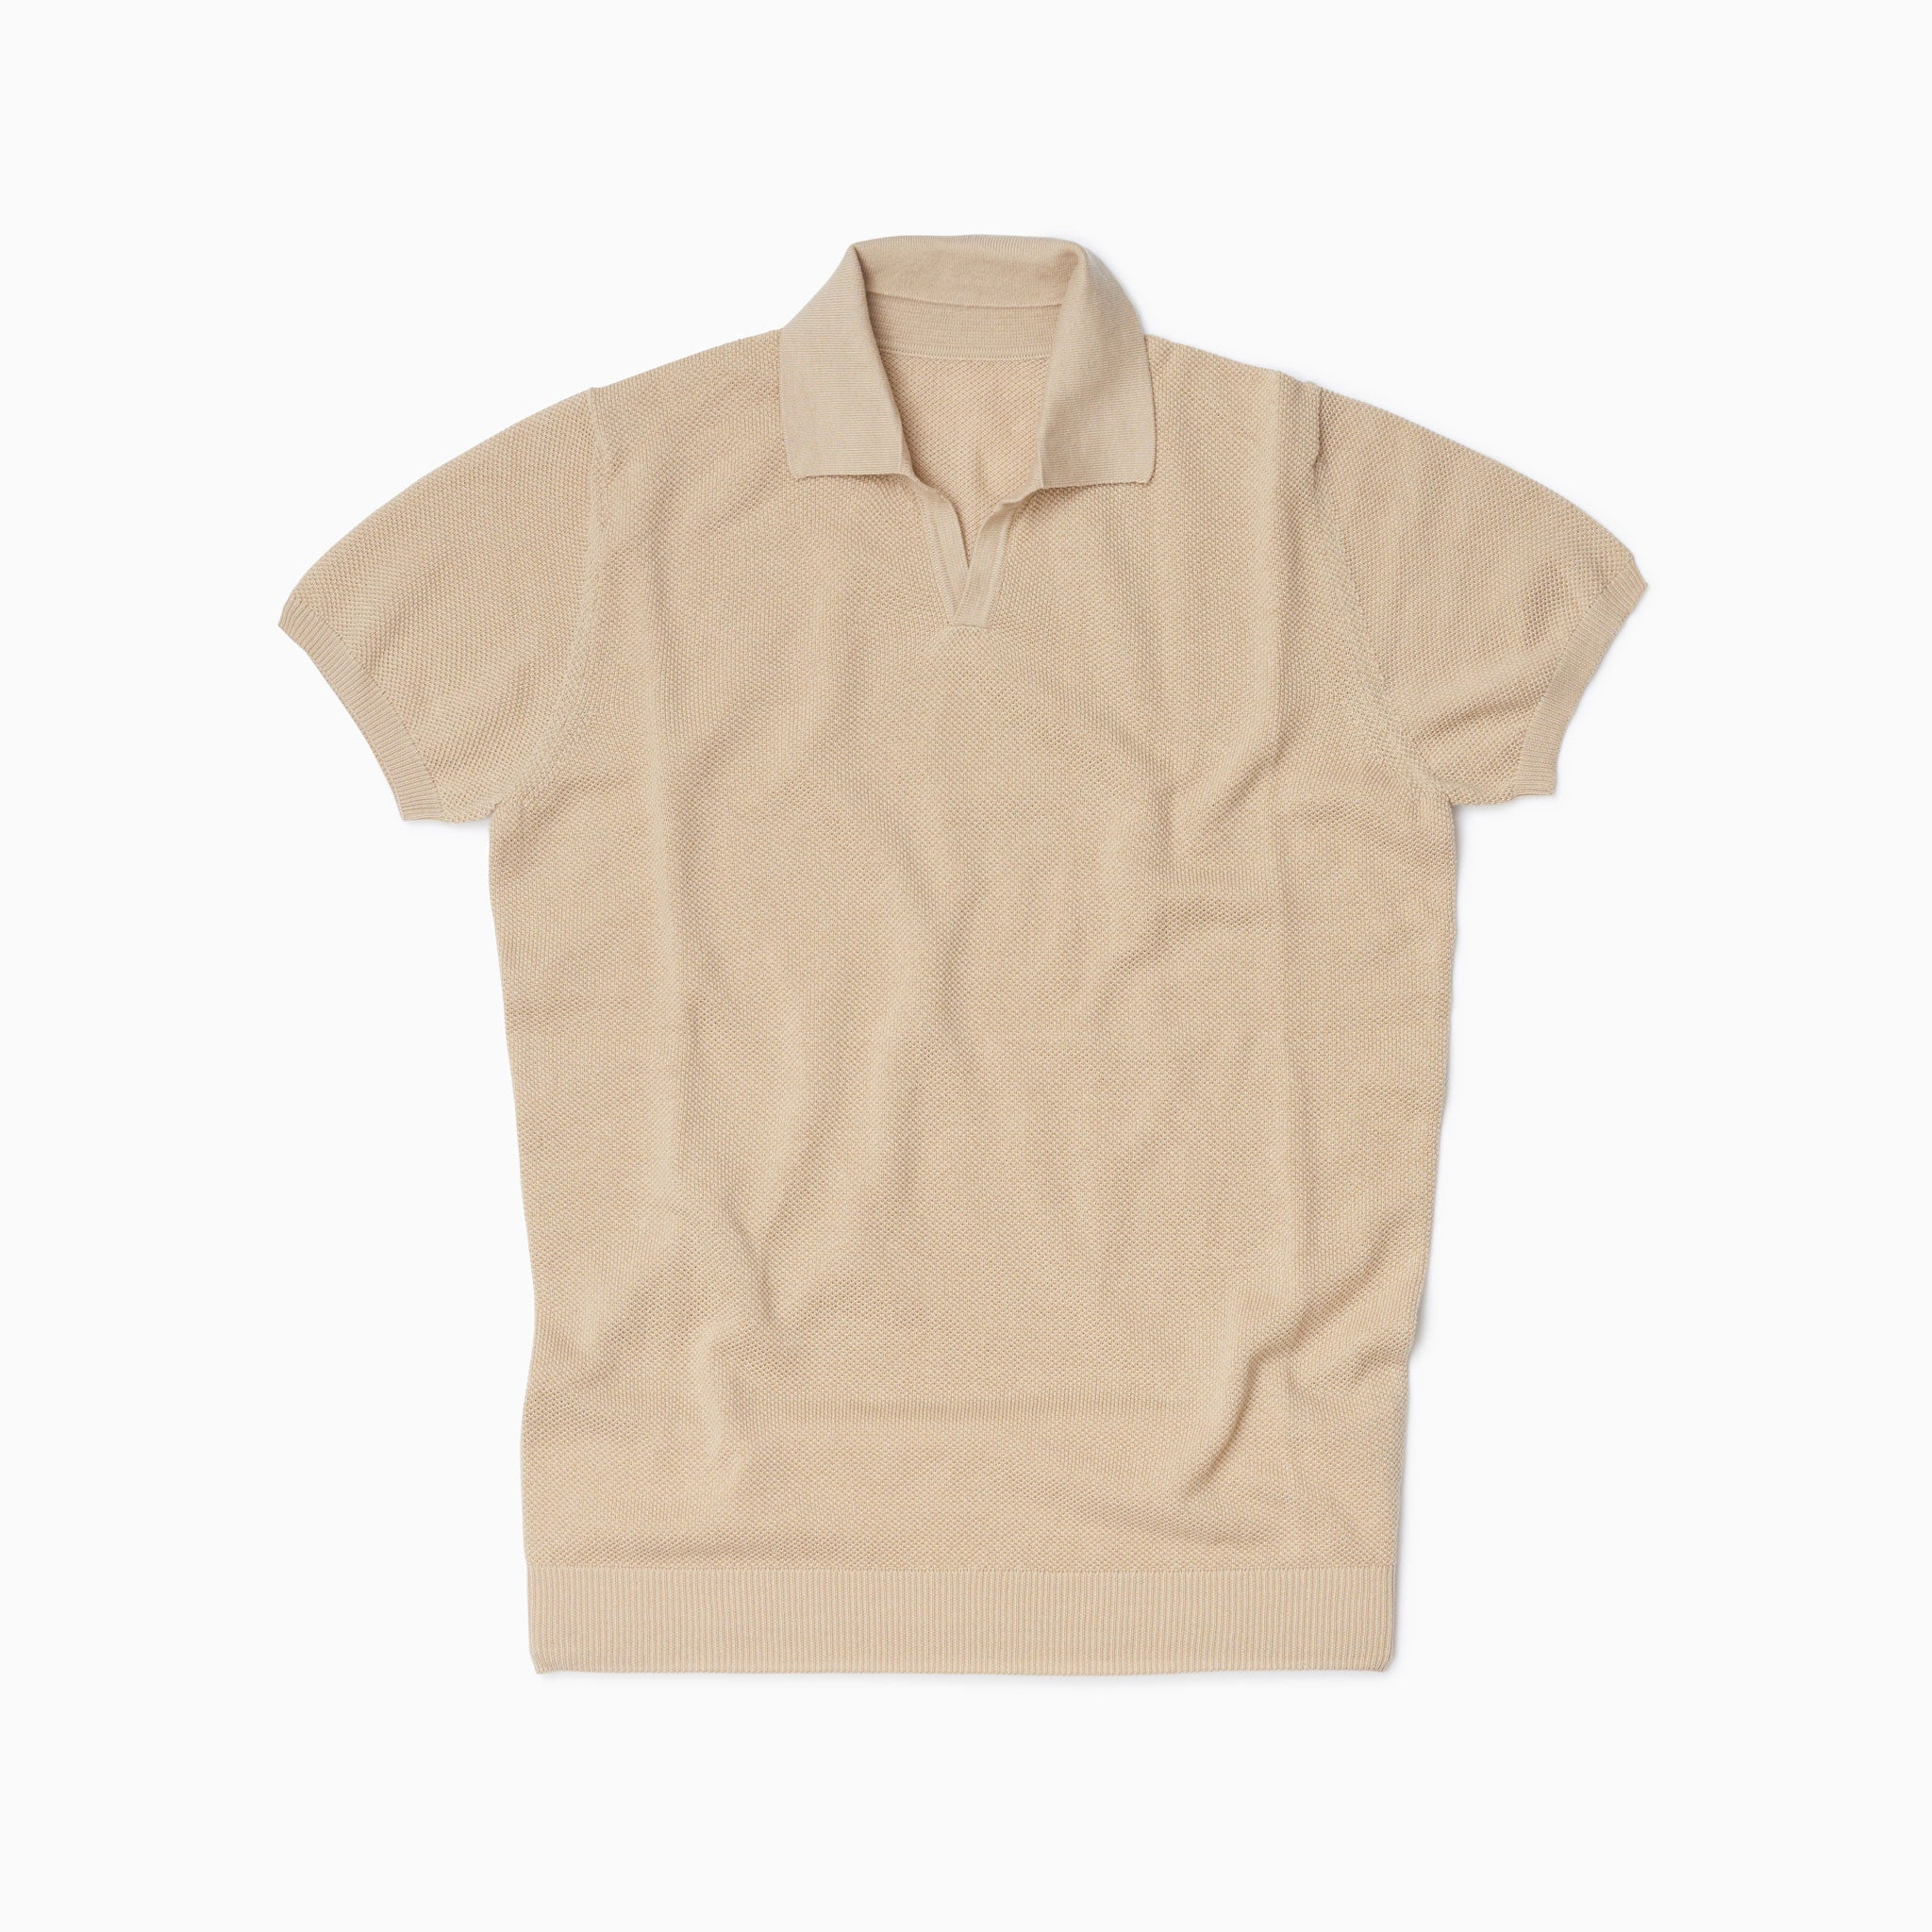 Beige Cotton Honeycomb Short Sleeve Polo